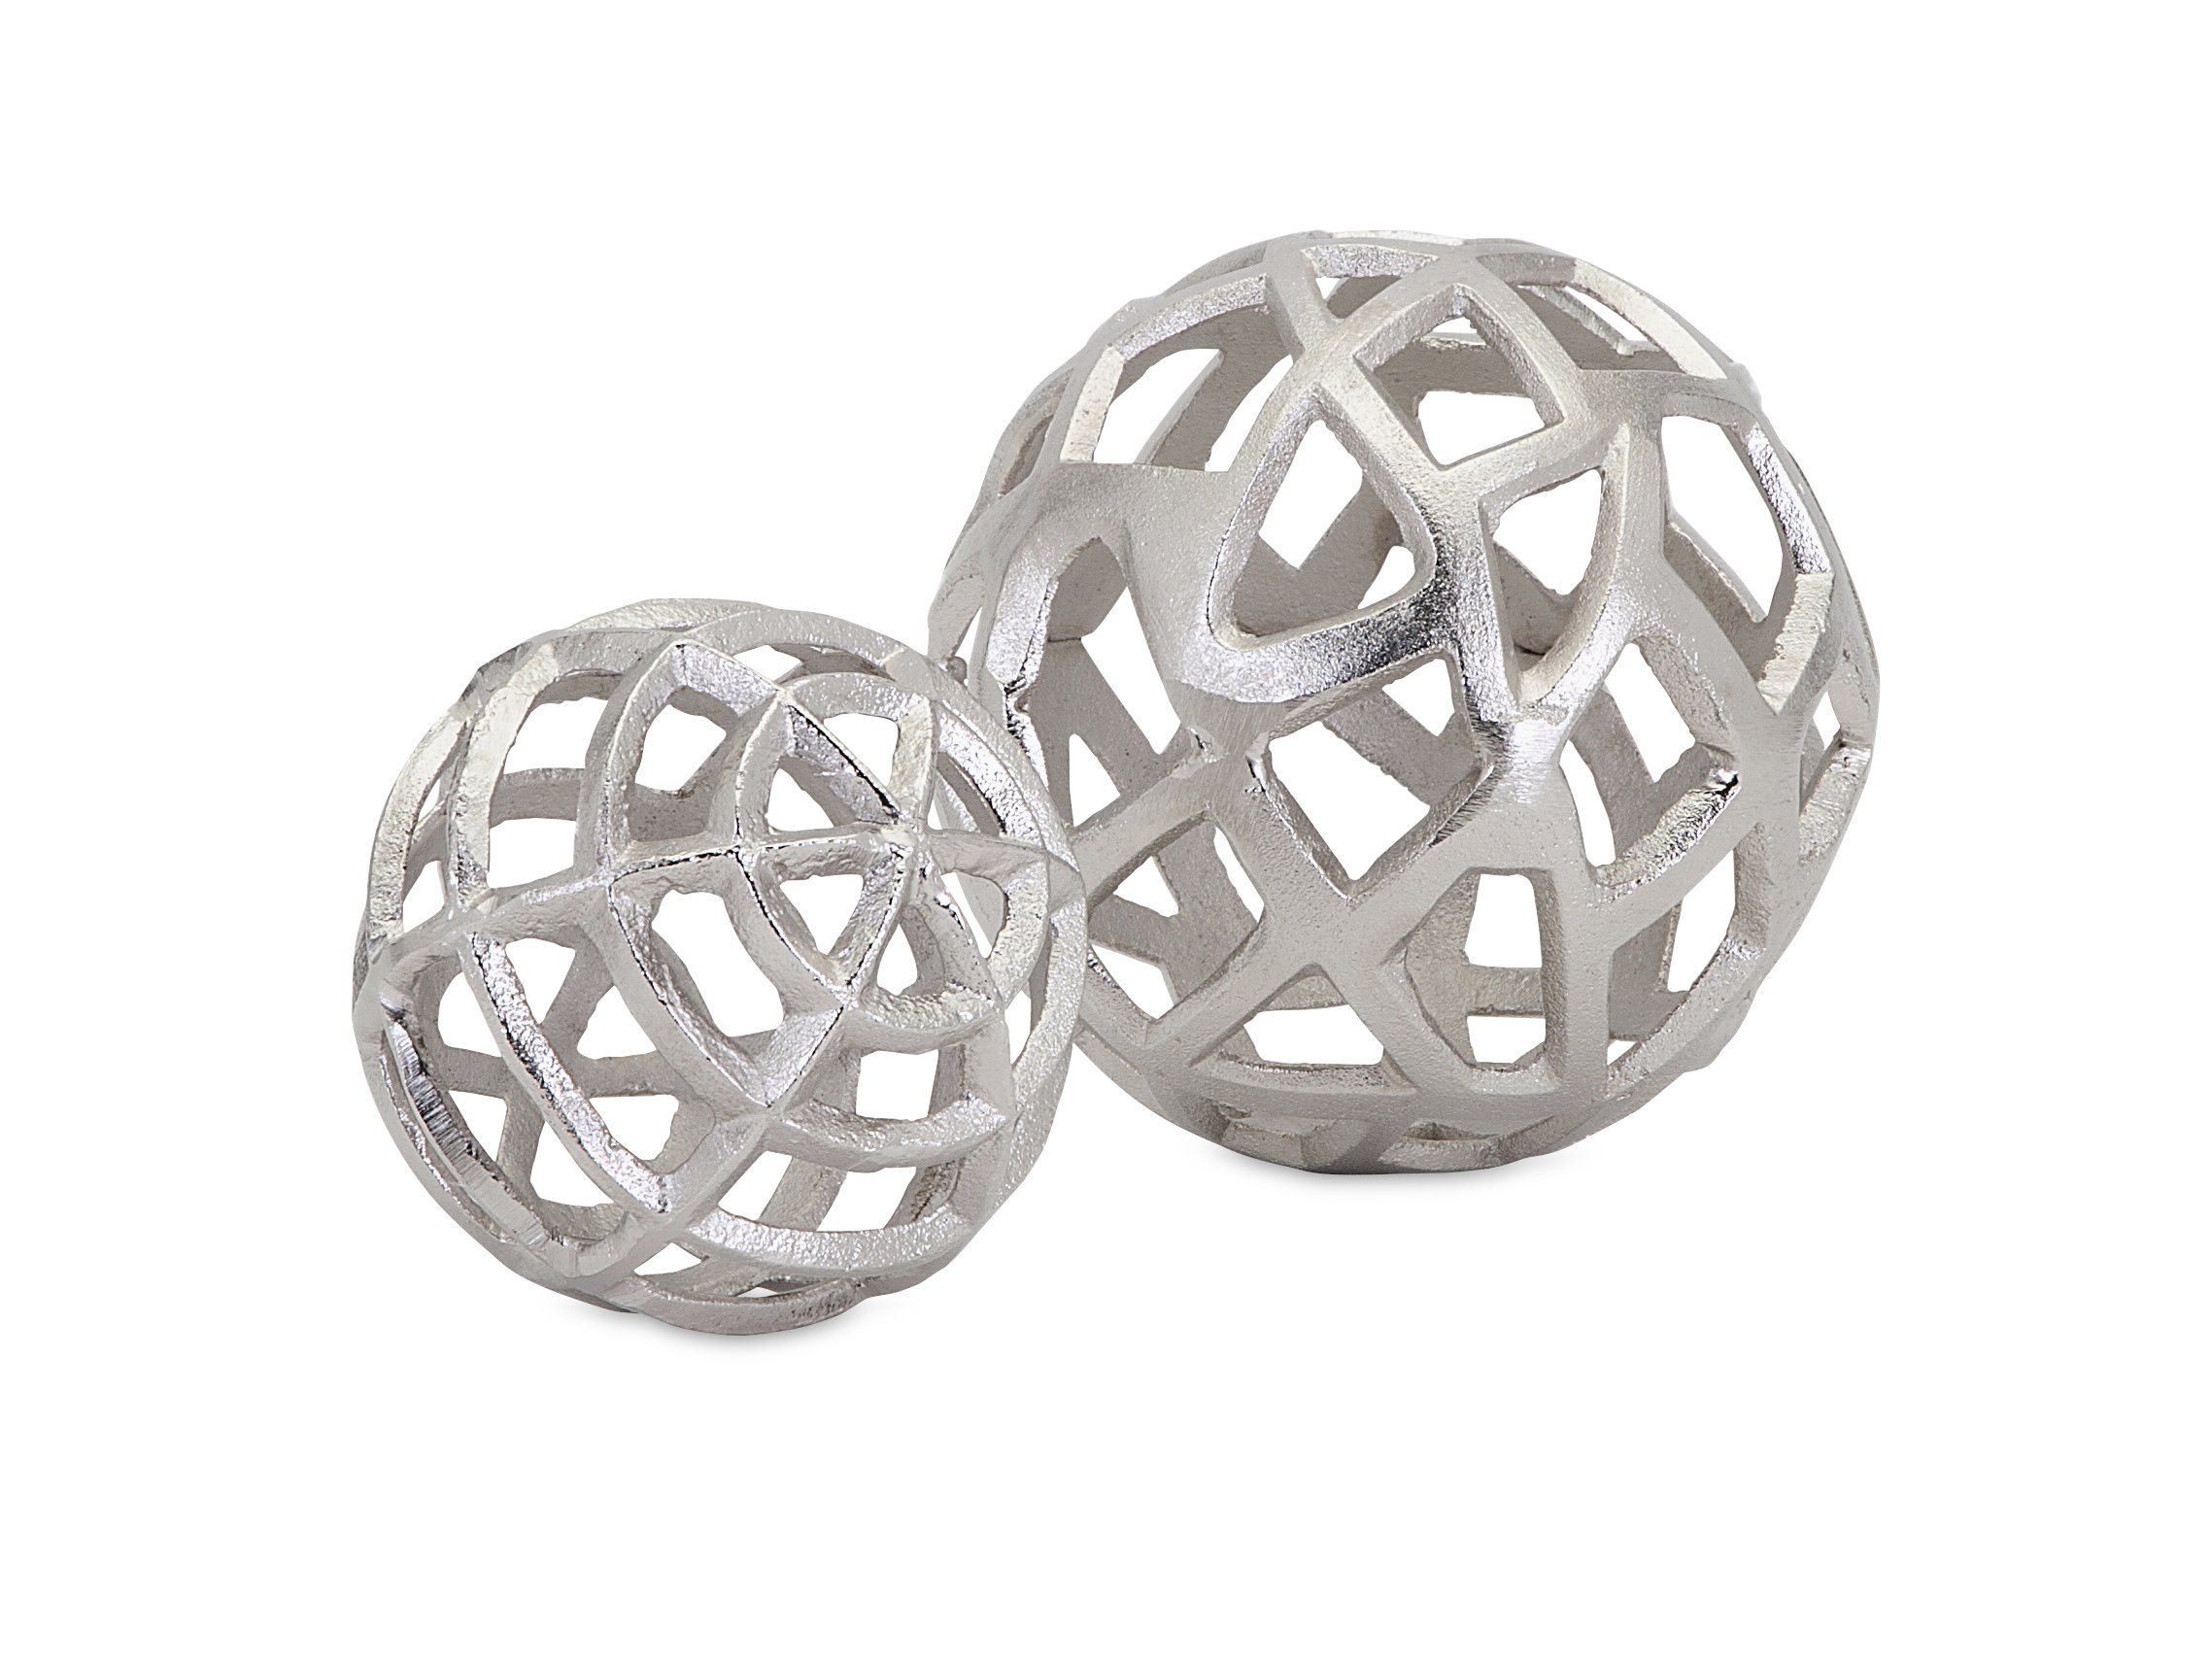 Imax Trisha Yearwood Home Collection 10464-2 Outer Banks Spheres (Set of 2)